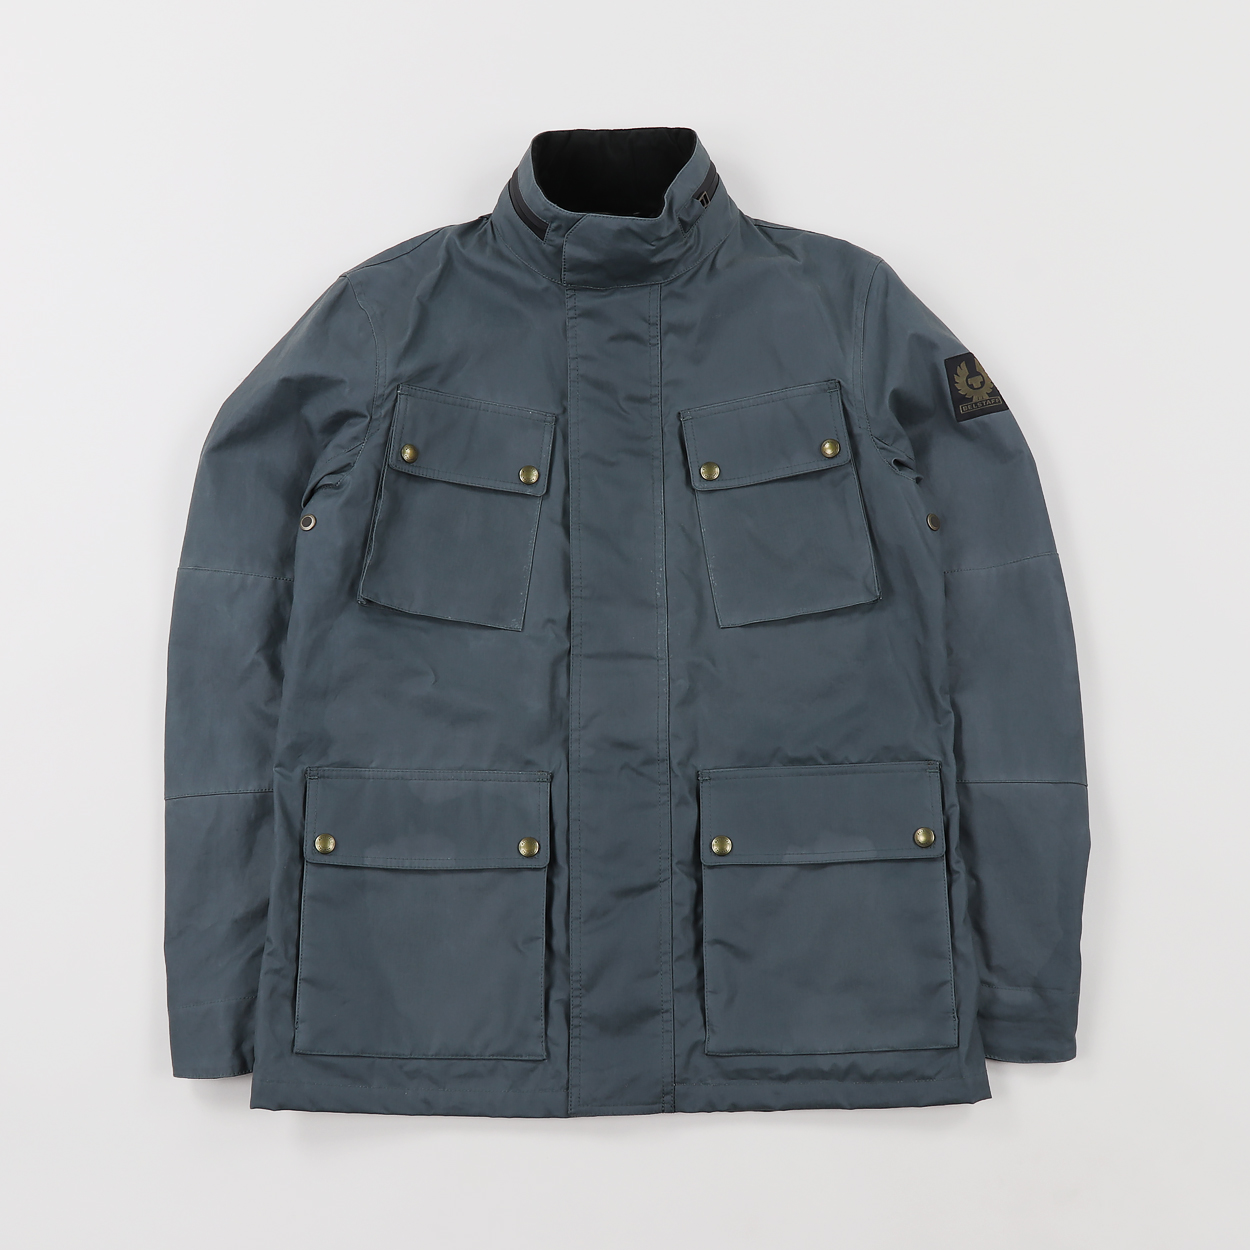 c788d52a581 A waxed cotton jacket from premium outerwear designers Belstaff. With UK  motorcycle heritage, this practical jacket is weather-resistant, warm, and  includes ...